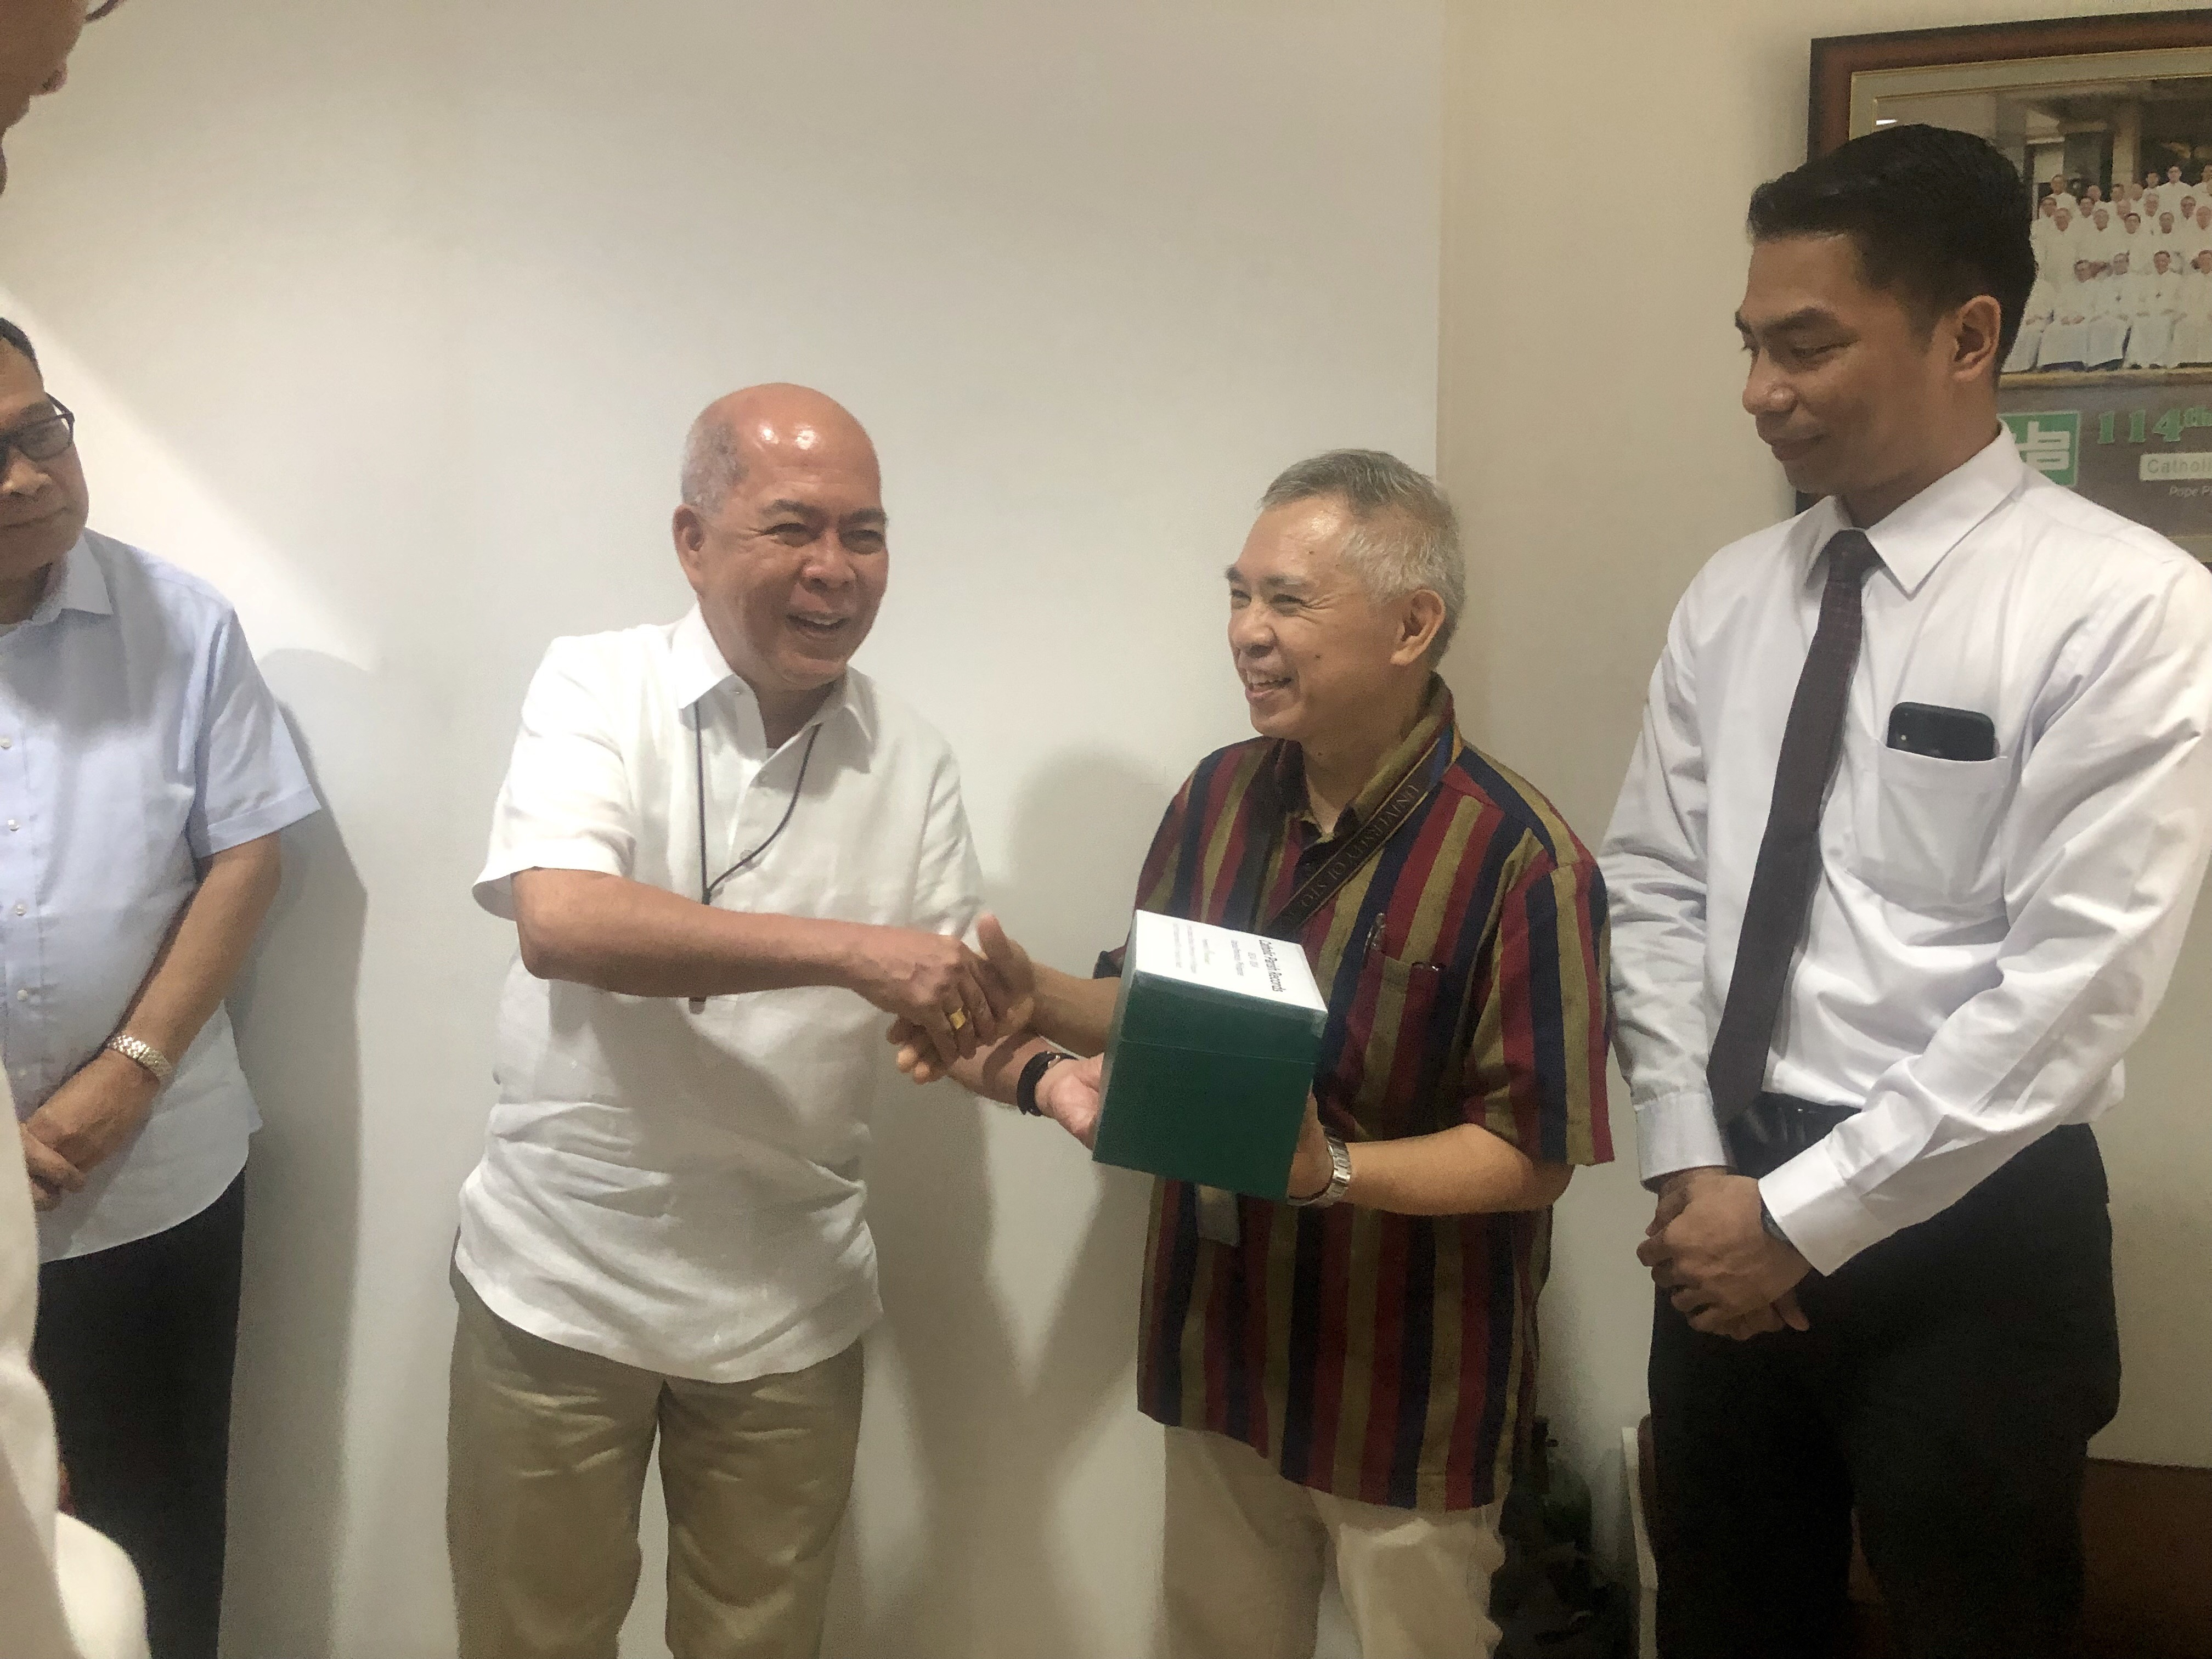 His Excellency, Archbishop Romulo Valles, turns over hard drives containing a collection of 14 million images to Archivist Professor Regalado Trota Jose of the Archives of the University of Santo Tomas, where the records will be stored.